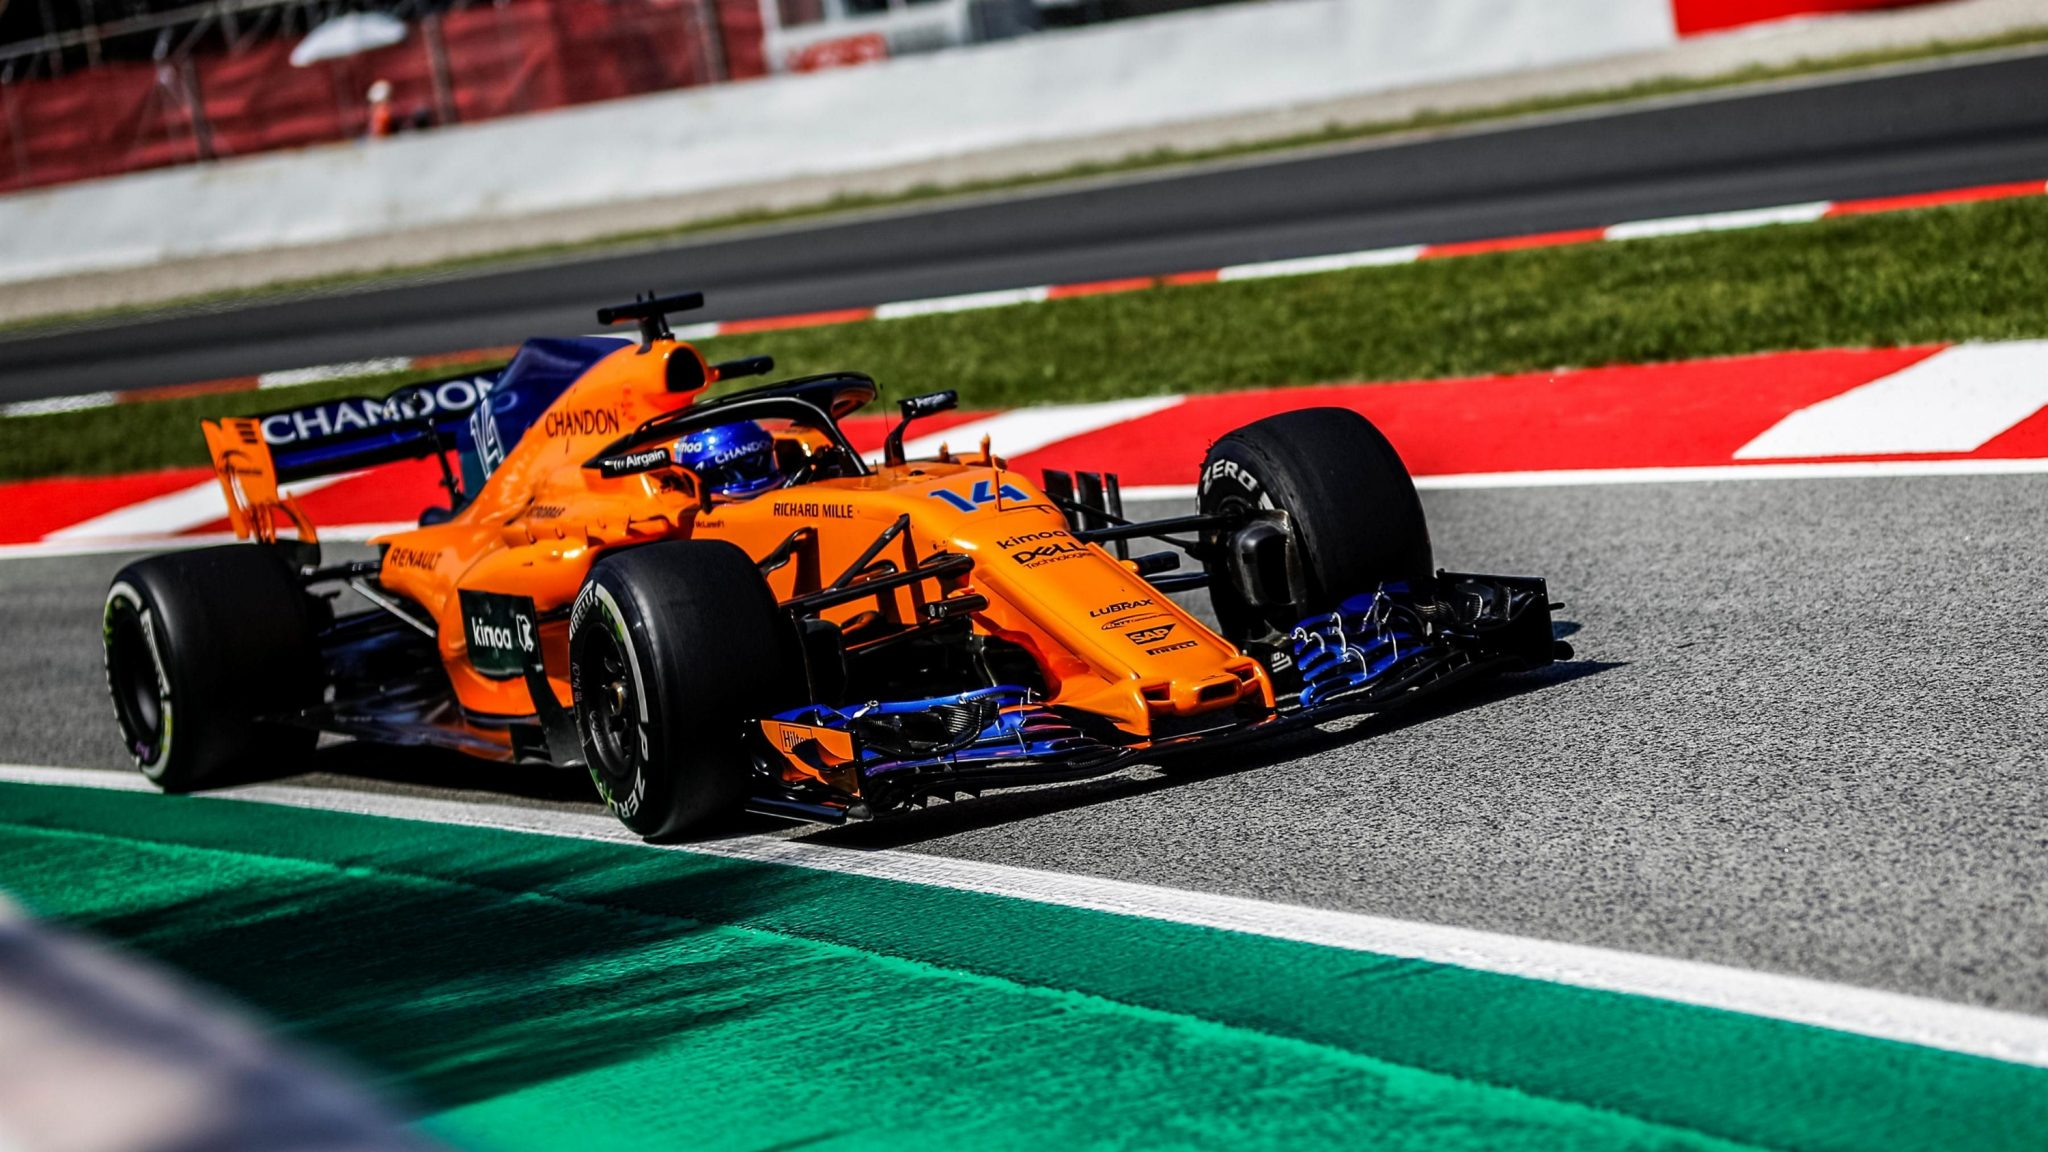 https://www.formula1.com/content/fom-website/en/latest/features/2018/5/who_s-hot-and-whos-not-after-day-1-in-spain/_jcr_content/image16x9.img.2048.medium.jpg/1526069960958.jpg